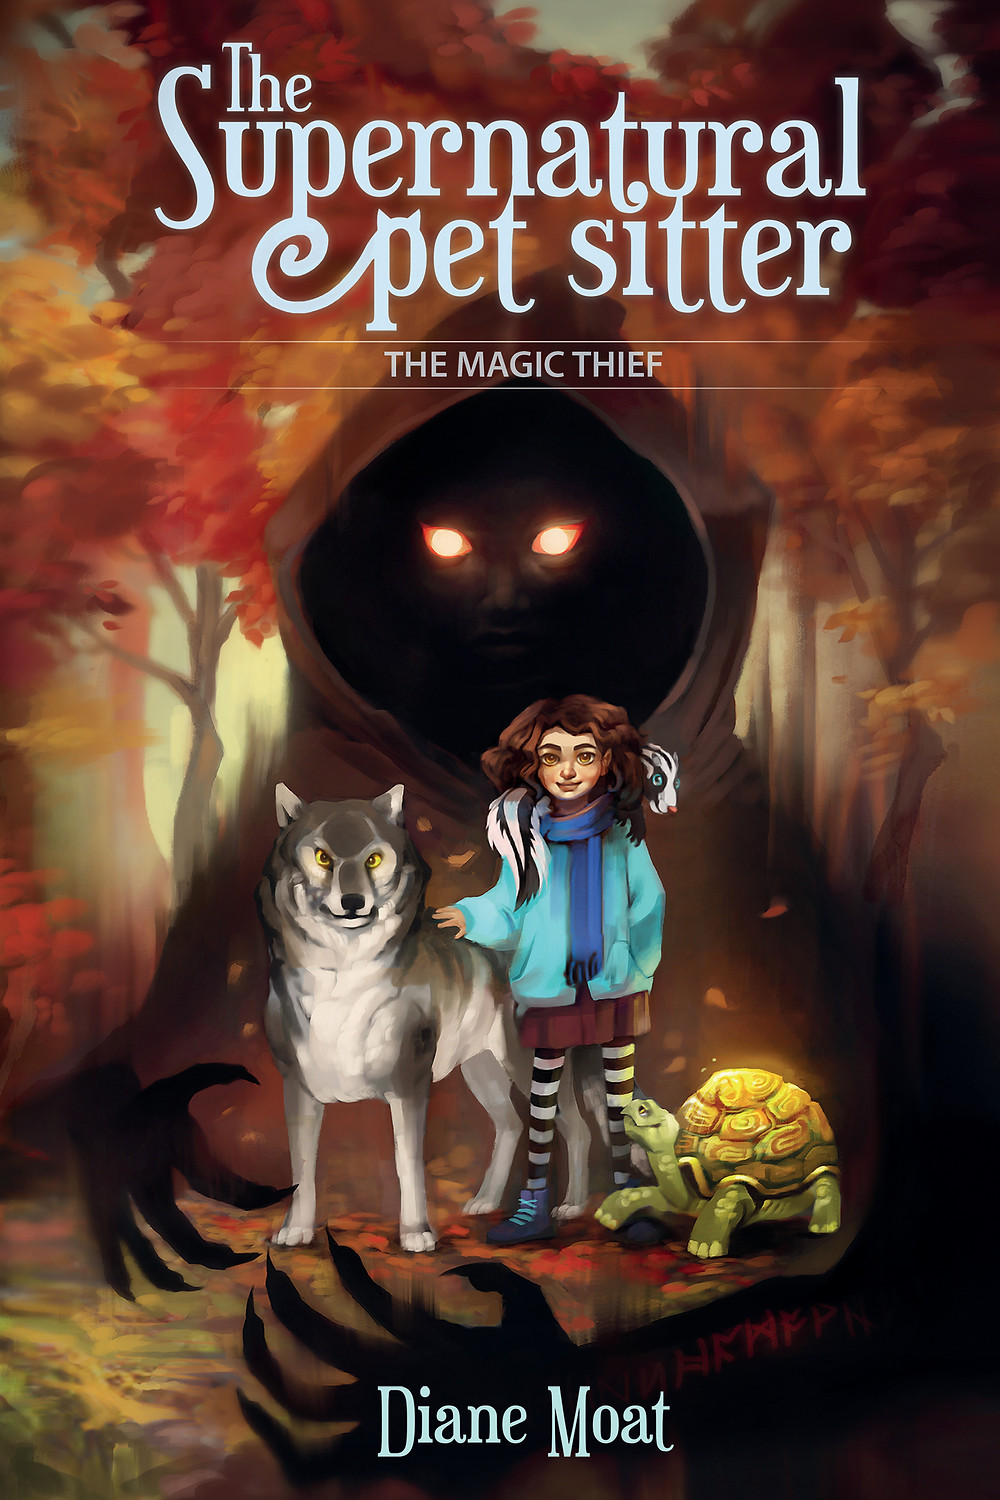 Check out the great new children's adventure series - The Supernatural Pet Sitter! Join Pepper Neely as she pet sits magical animals. The jobs are easy until someone starts stealing the animal;s magic. Pepper has to find the magic thief, before the magic thief finds her! If you know someone who loves Harry Potter, this book id for them. Available on Amazon, in paperback or Kindle.